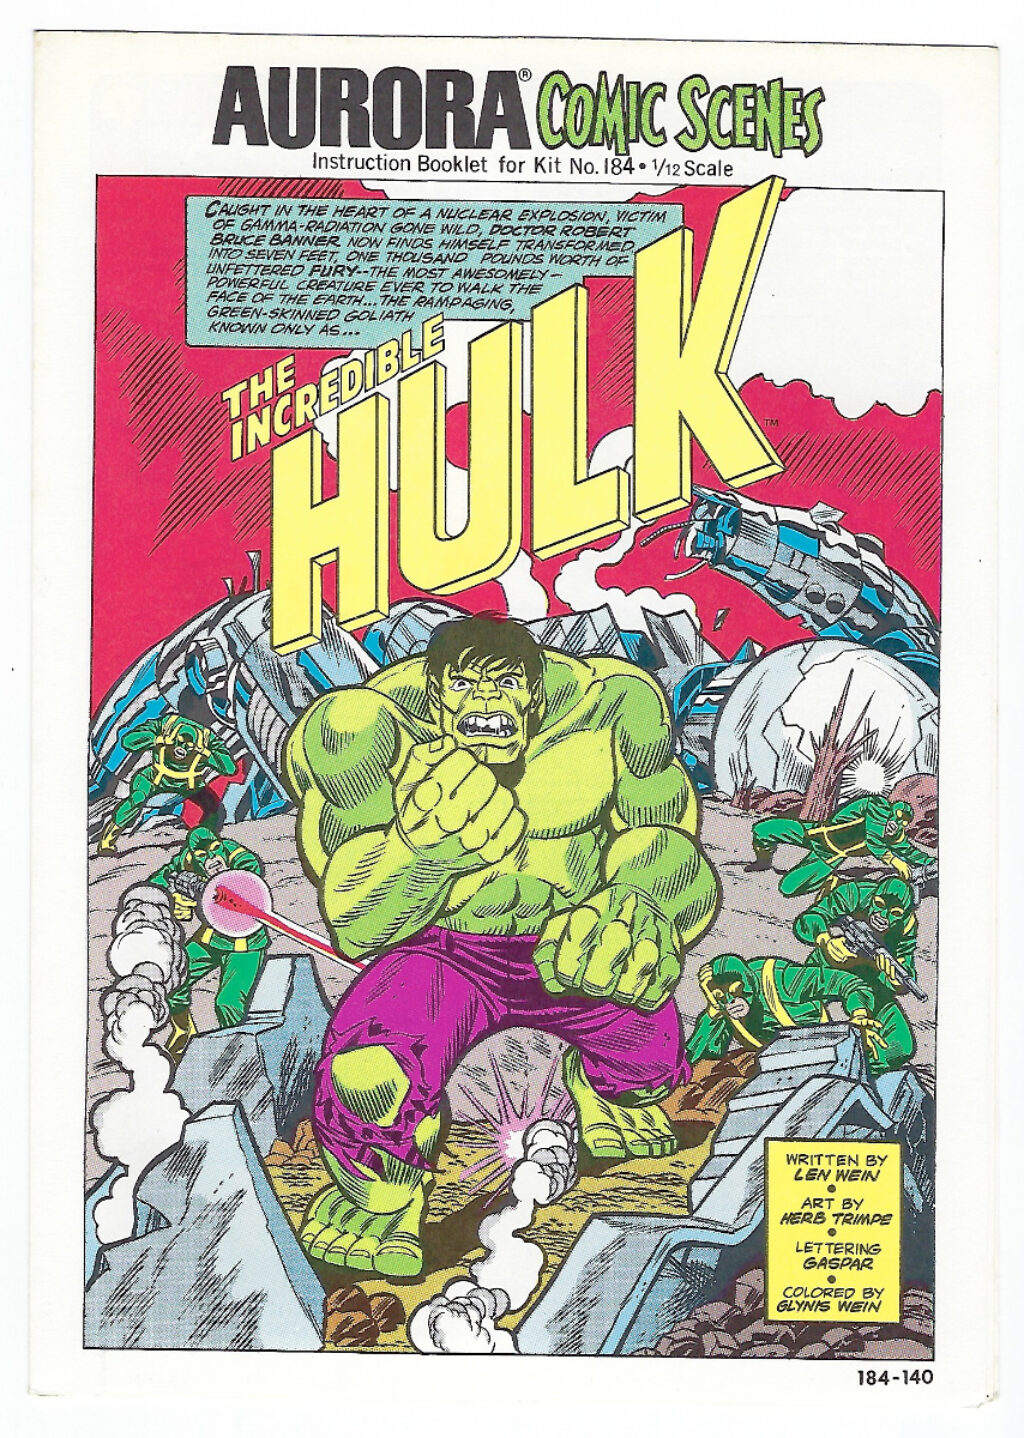 Aurora Comic Scenes Incredible Hulk Model Kit Comic Book & Instructions Booklet 1